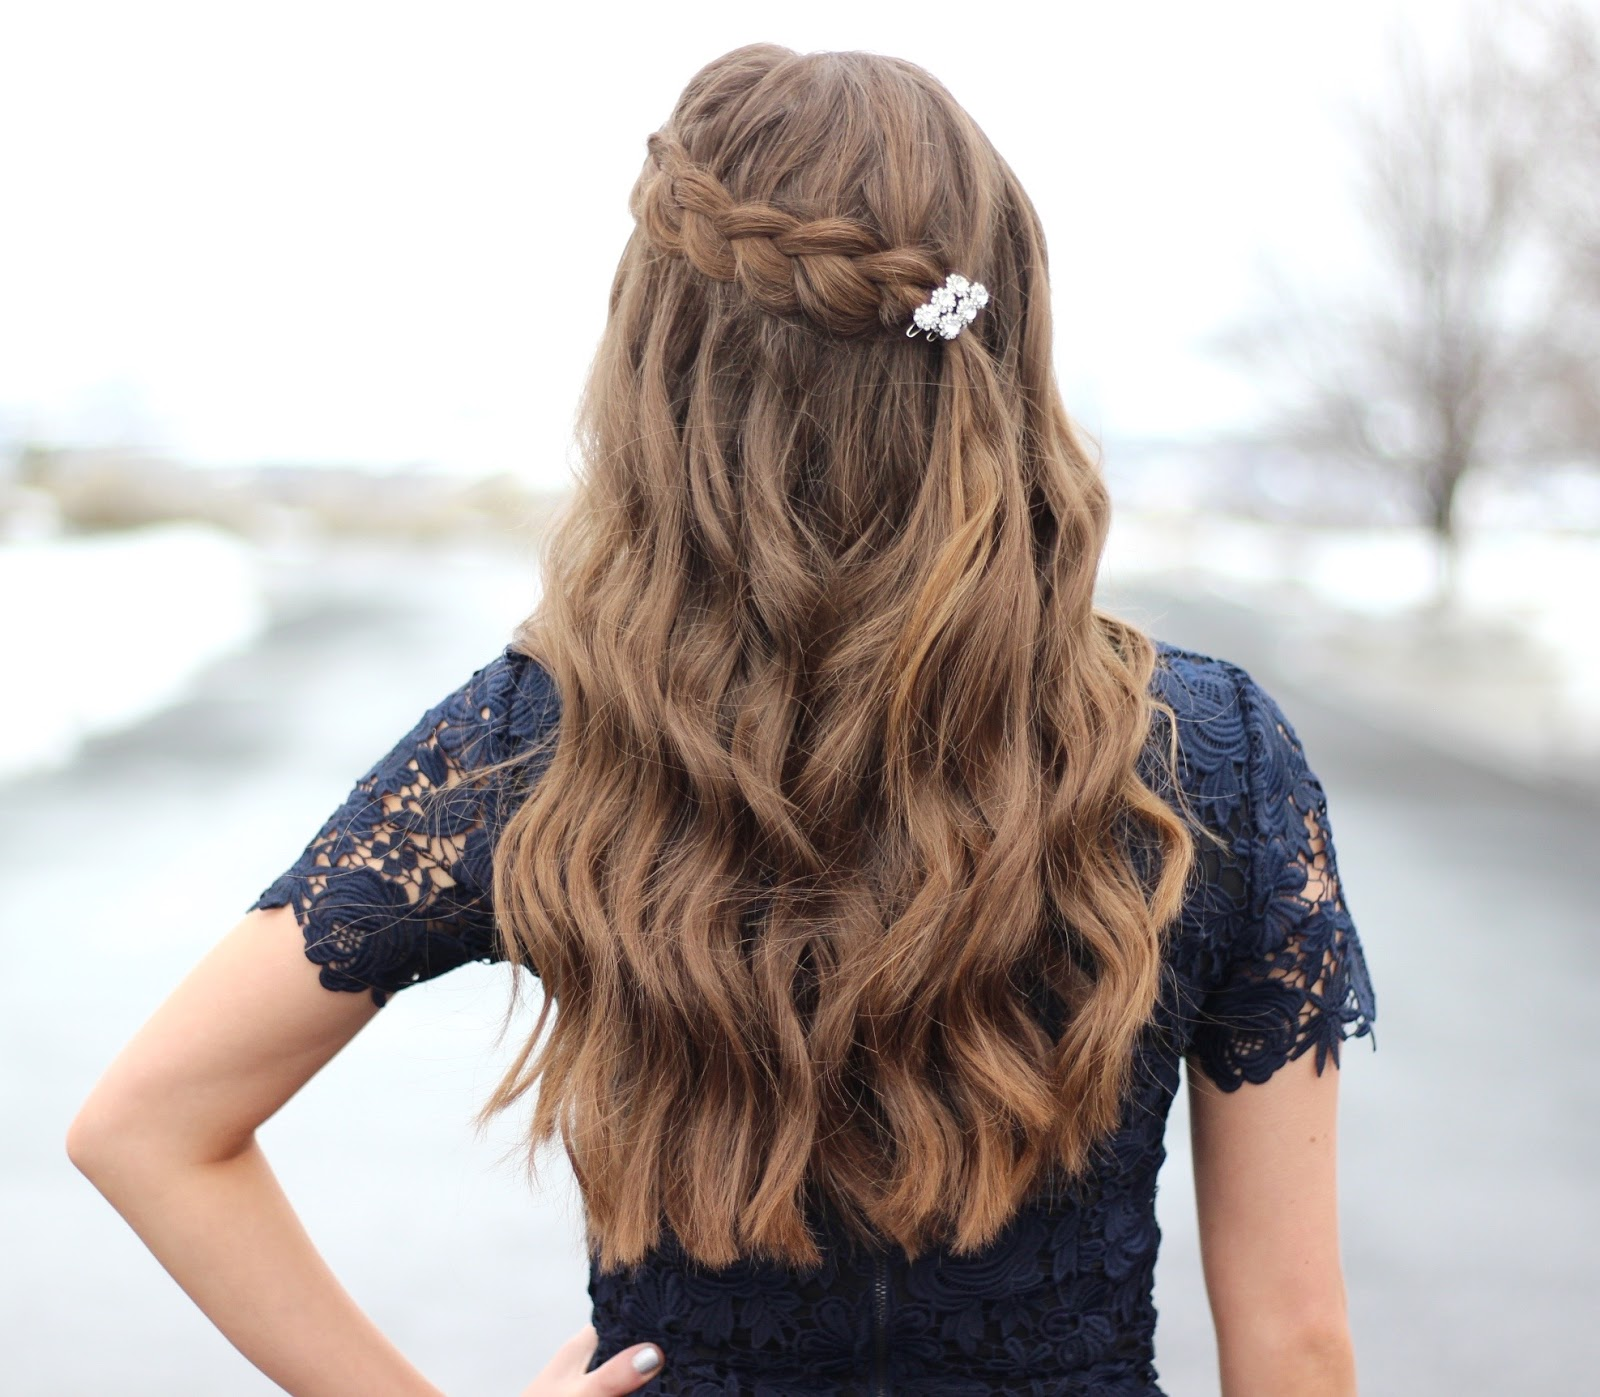 hannah hairstyles: preference school dance